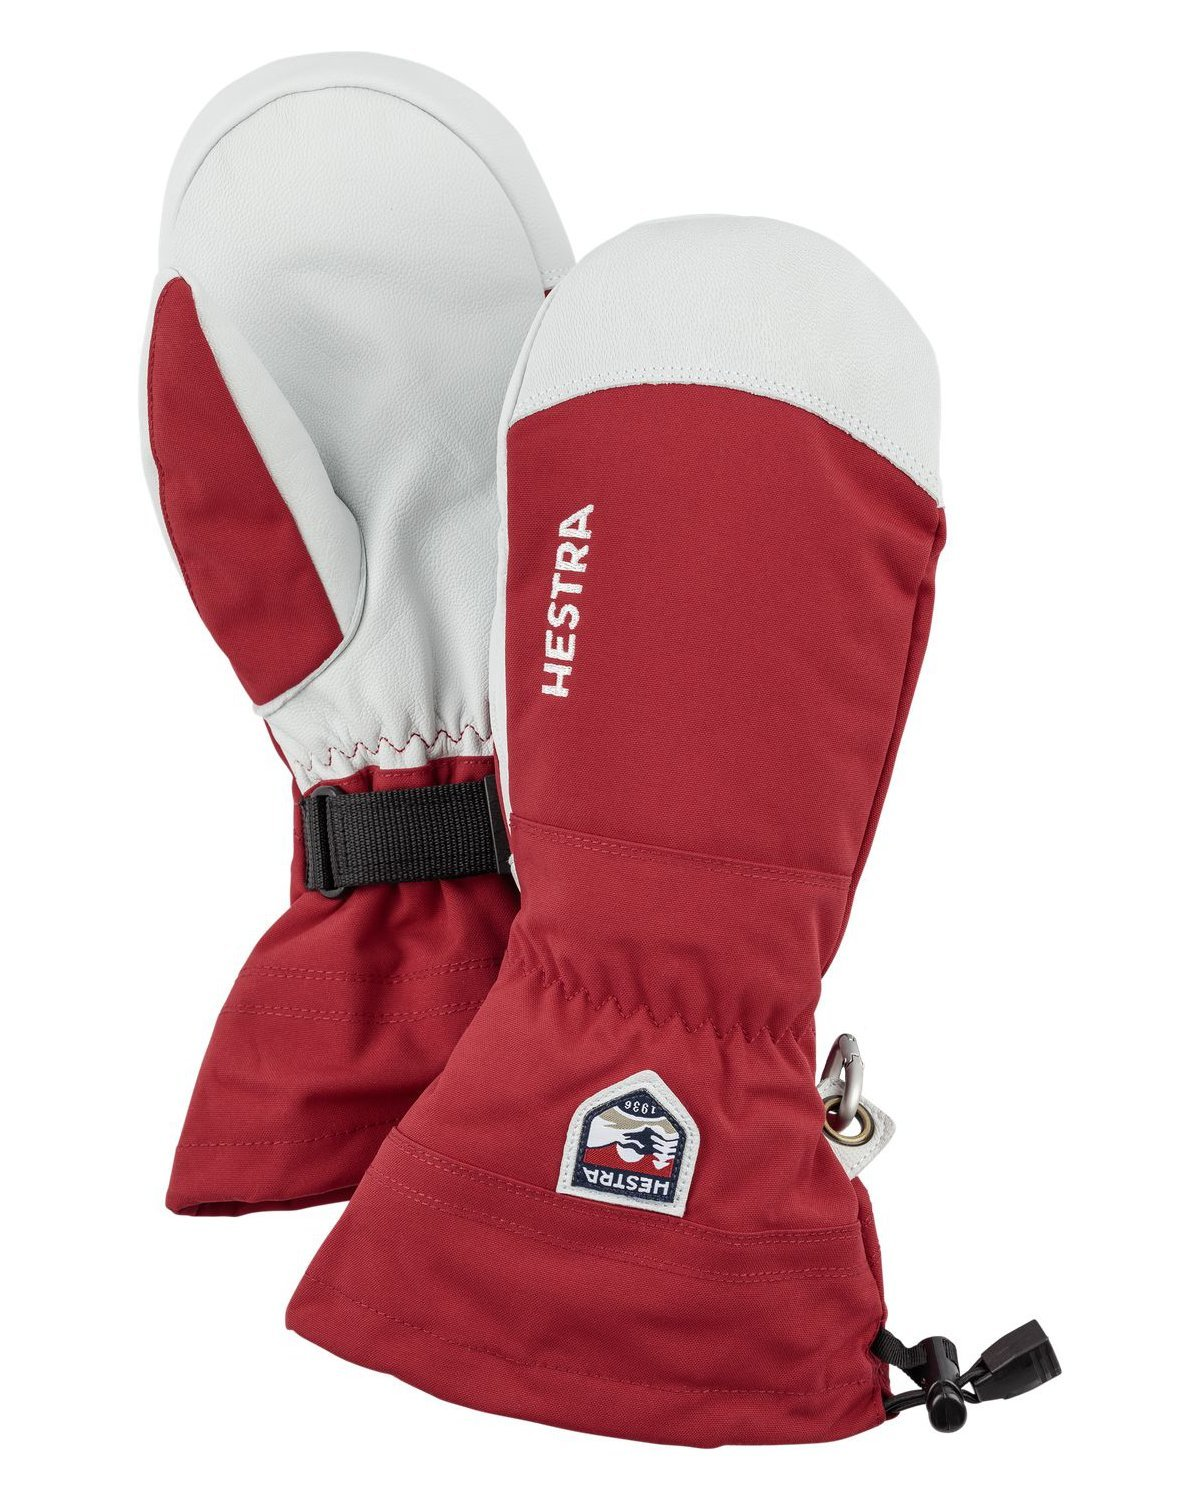 Hestra Gloves 30571 Army Leather Heli Ski Mitt, Red - 6 by Hestra